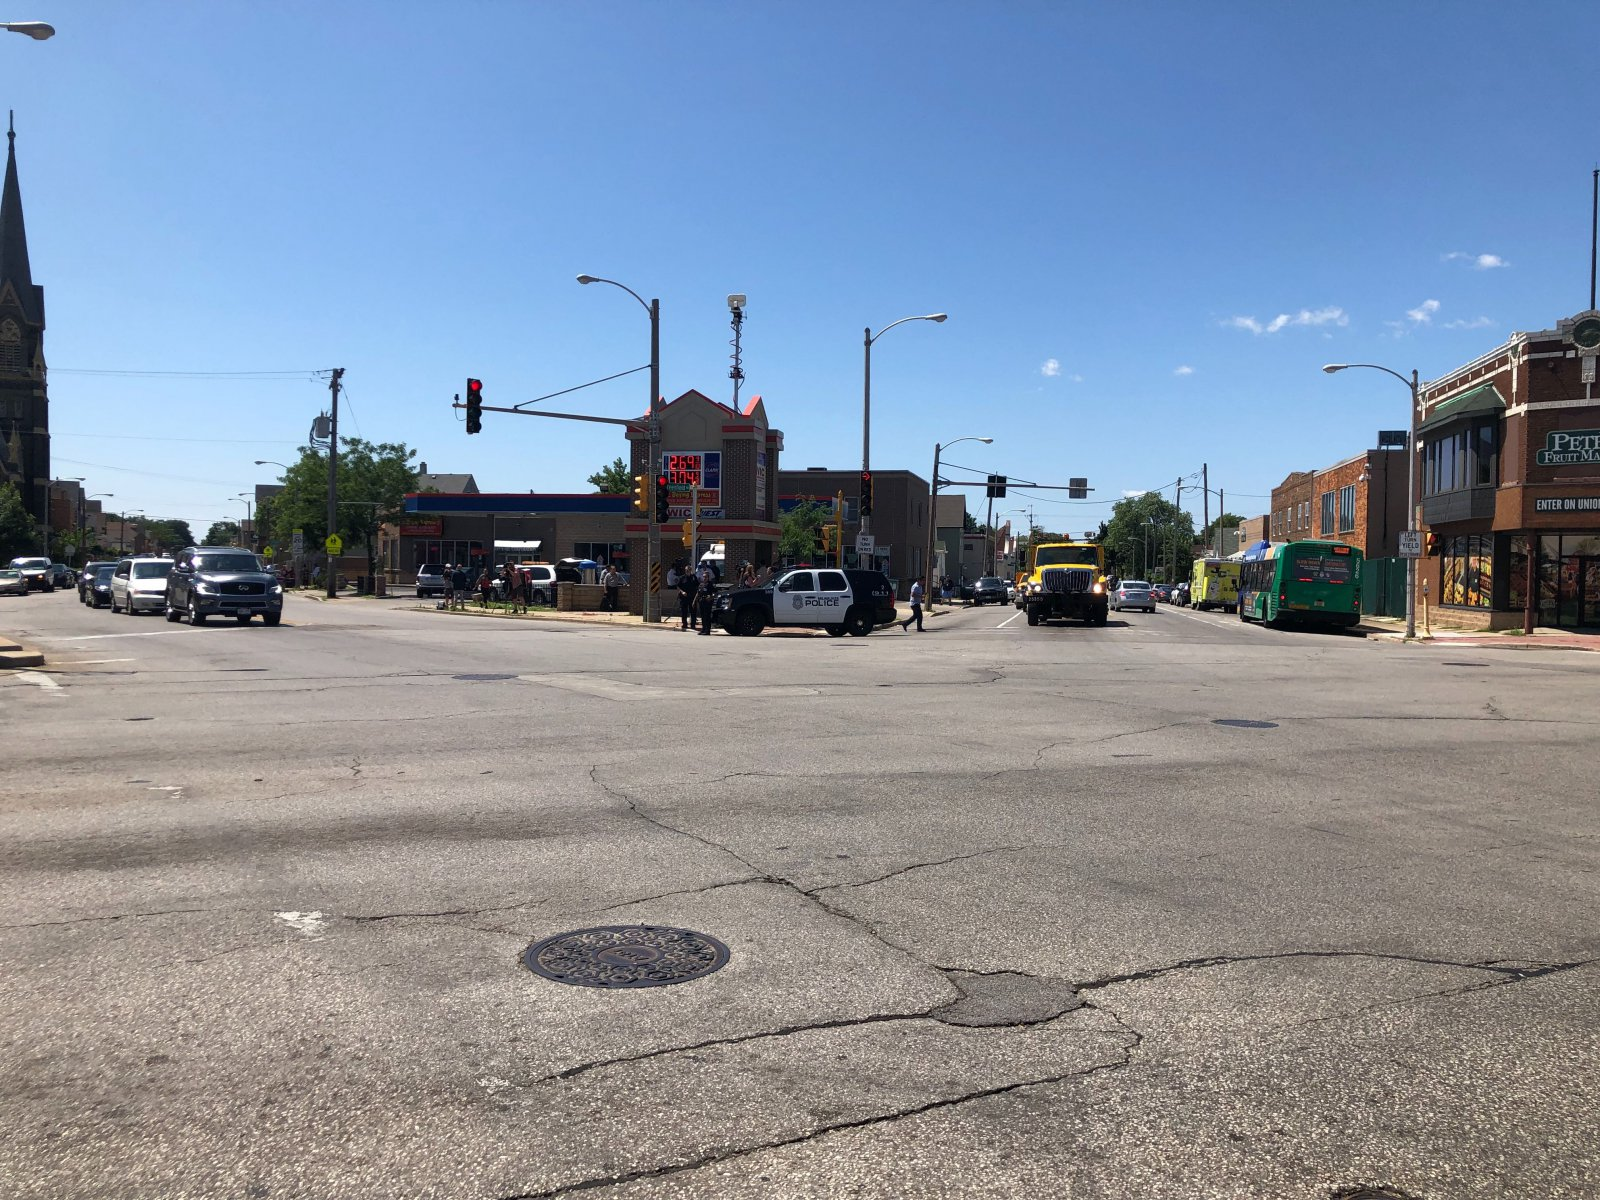 S. Cesar Chavez Dr., W. Greenfield Ave. and S. Muskego Ave.